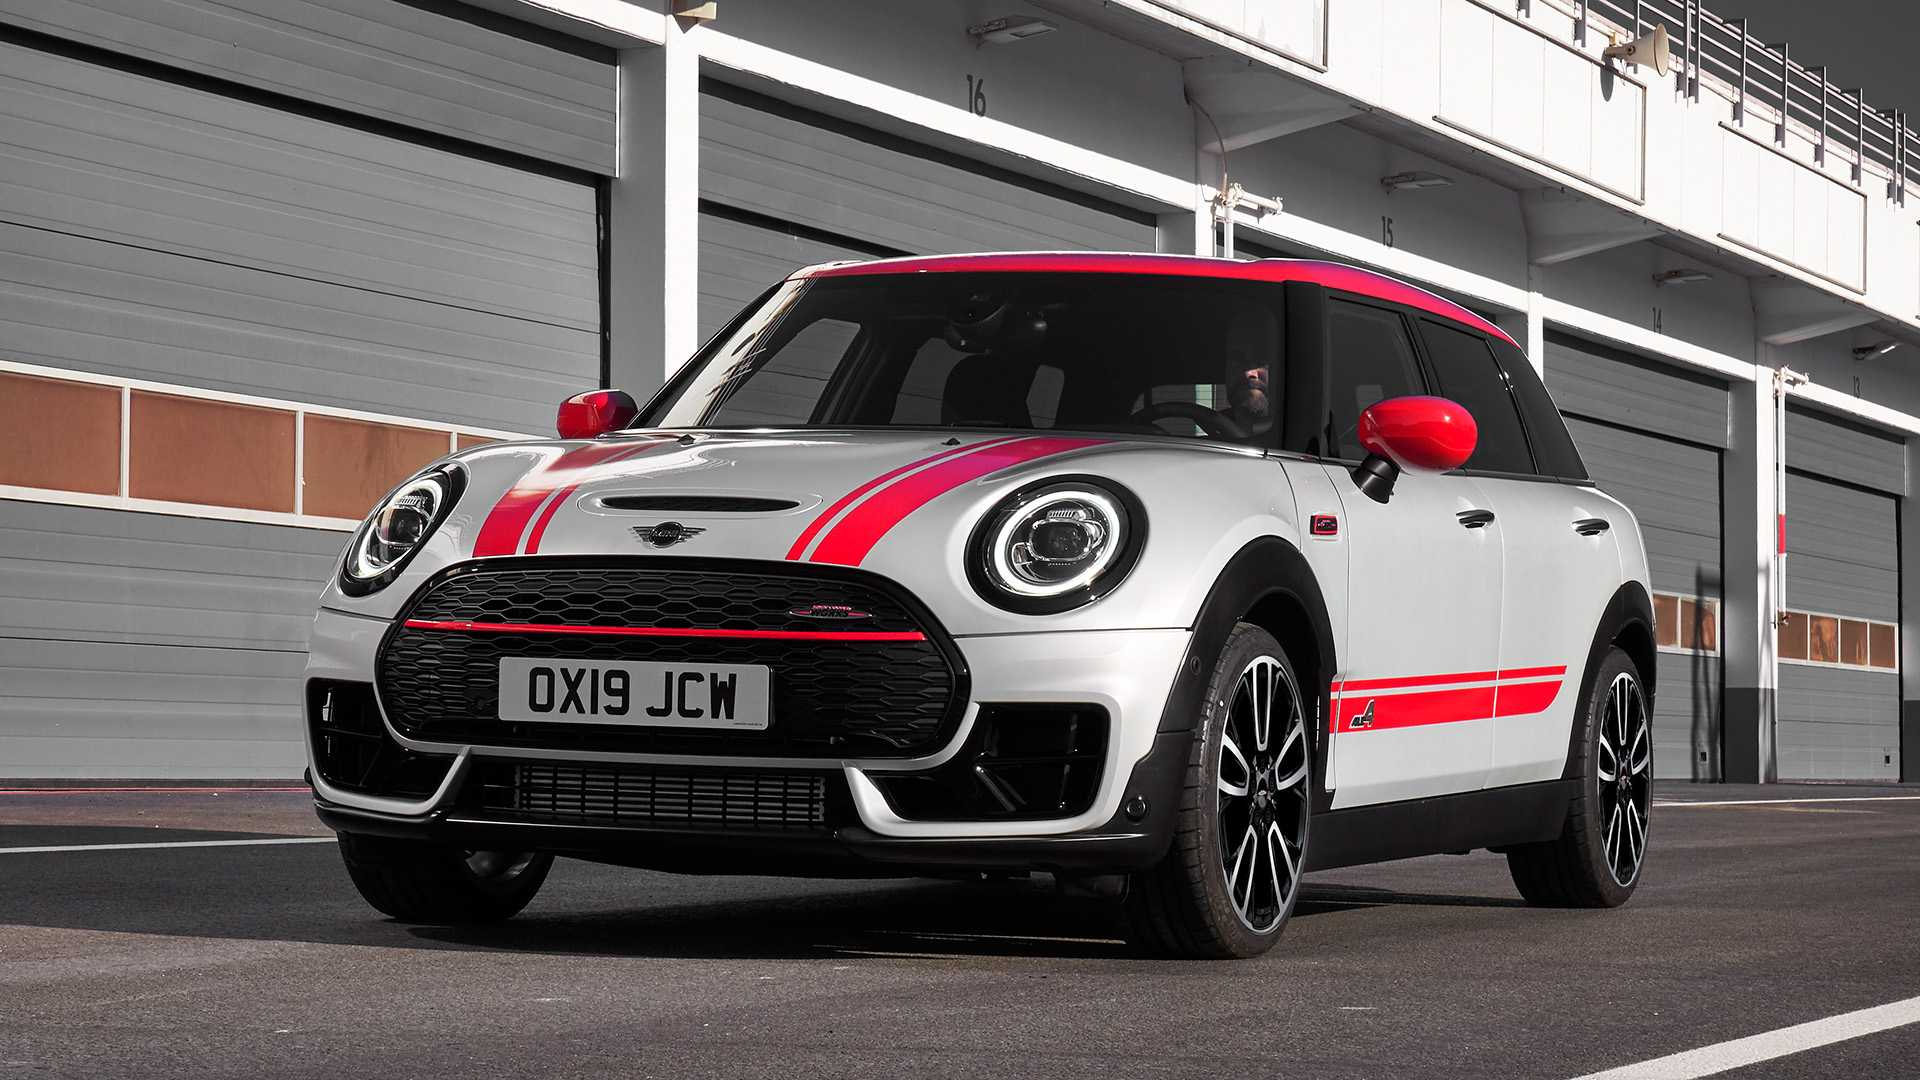 MINI has unveiled two new cars it has been working on for some time, the John Cooper Works-branded models Countryman and Clubman